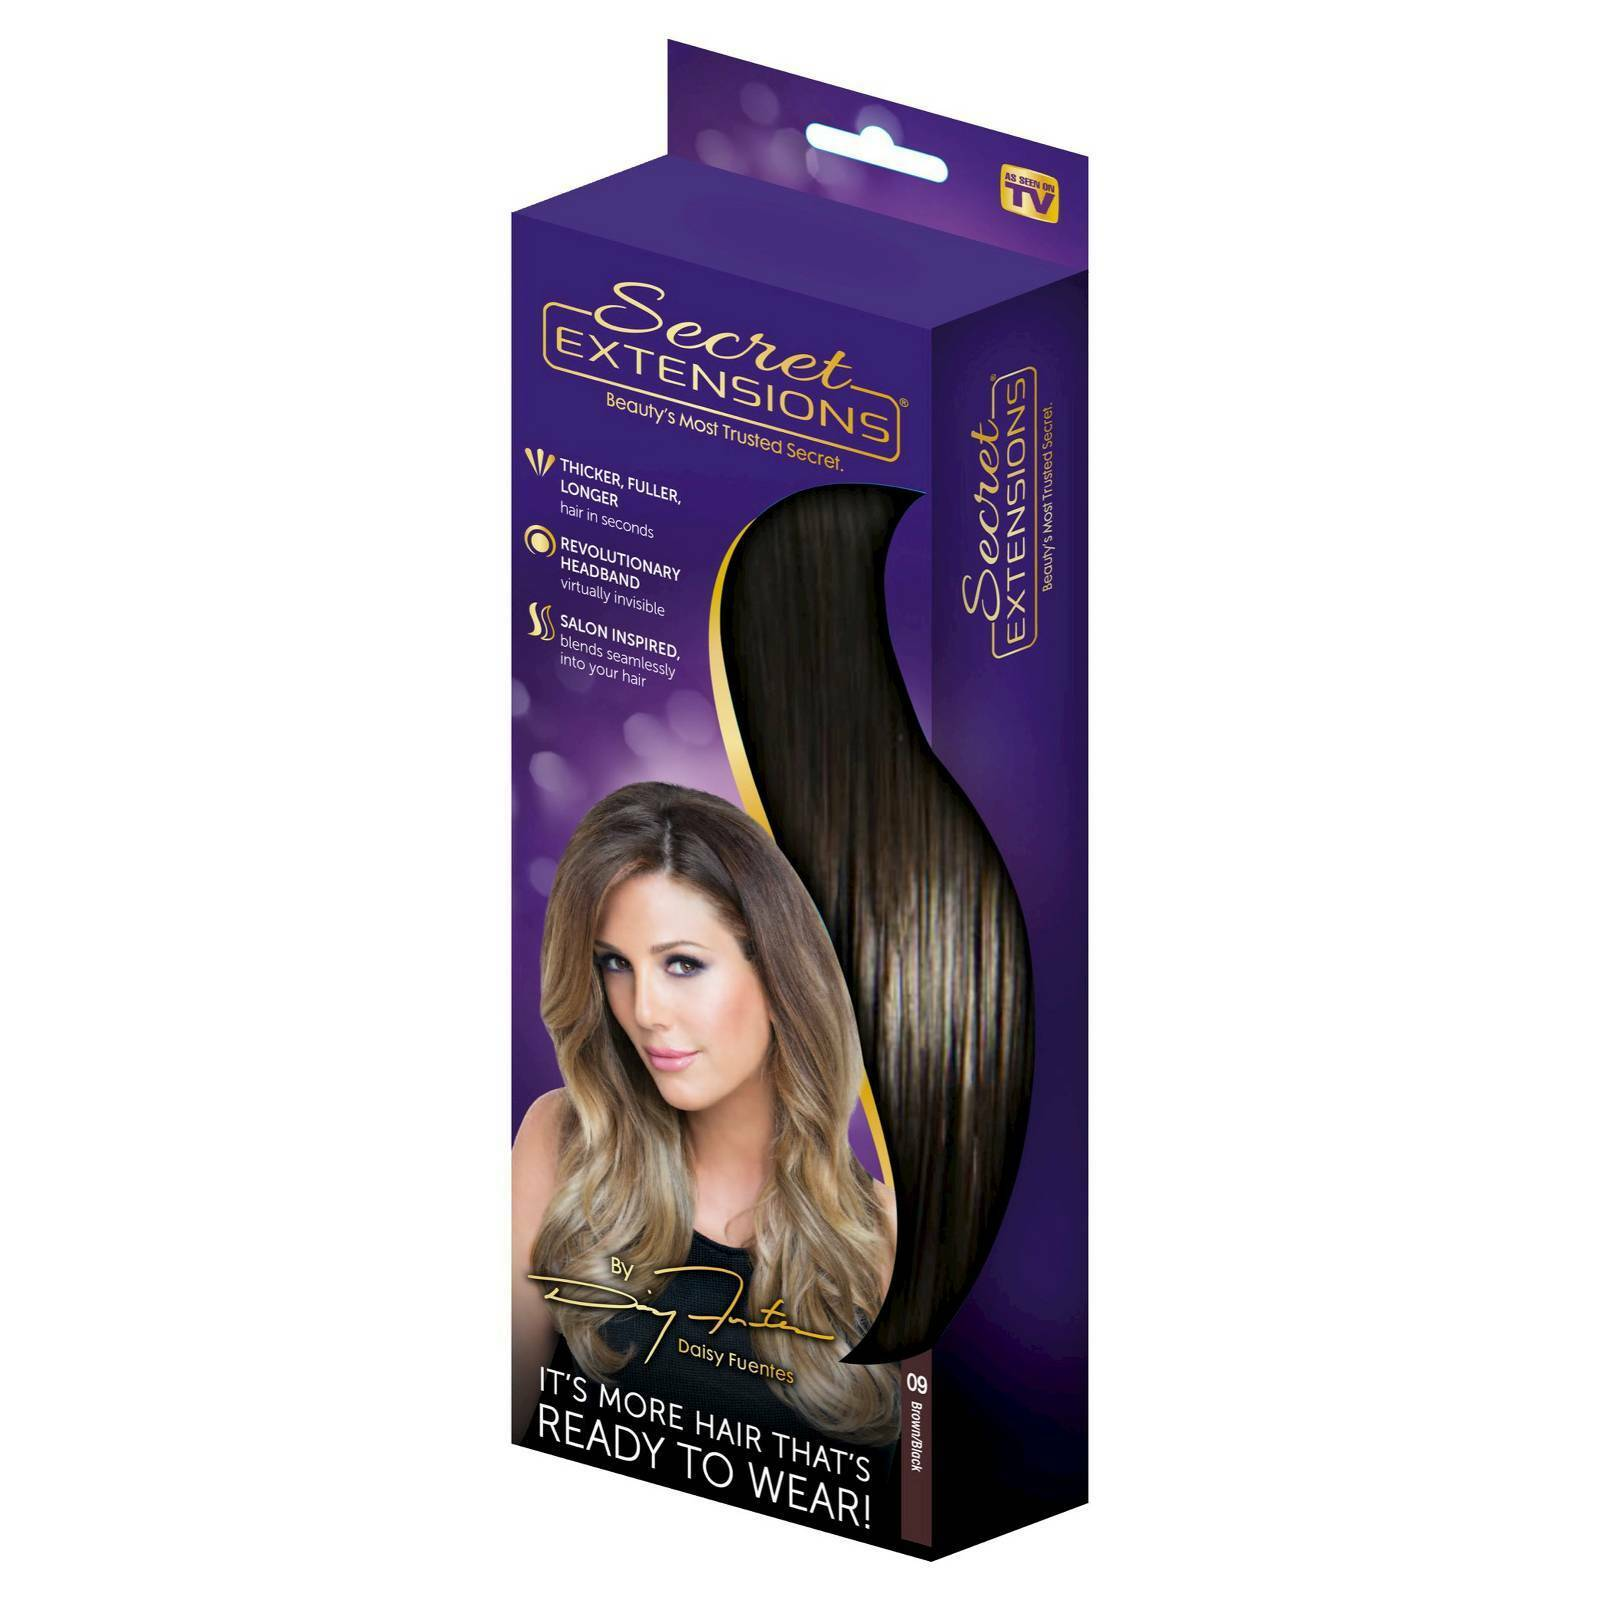 Secret Extensions By Daisy Fuentes Hair Extensions As Seen On Tv